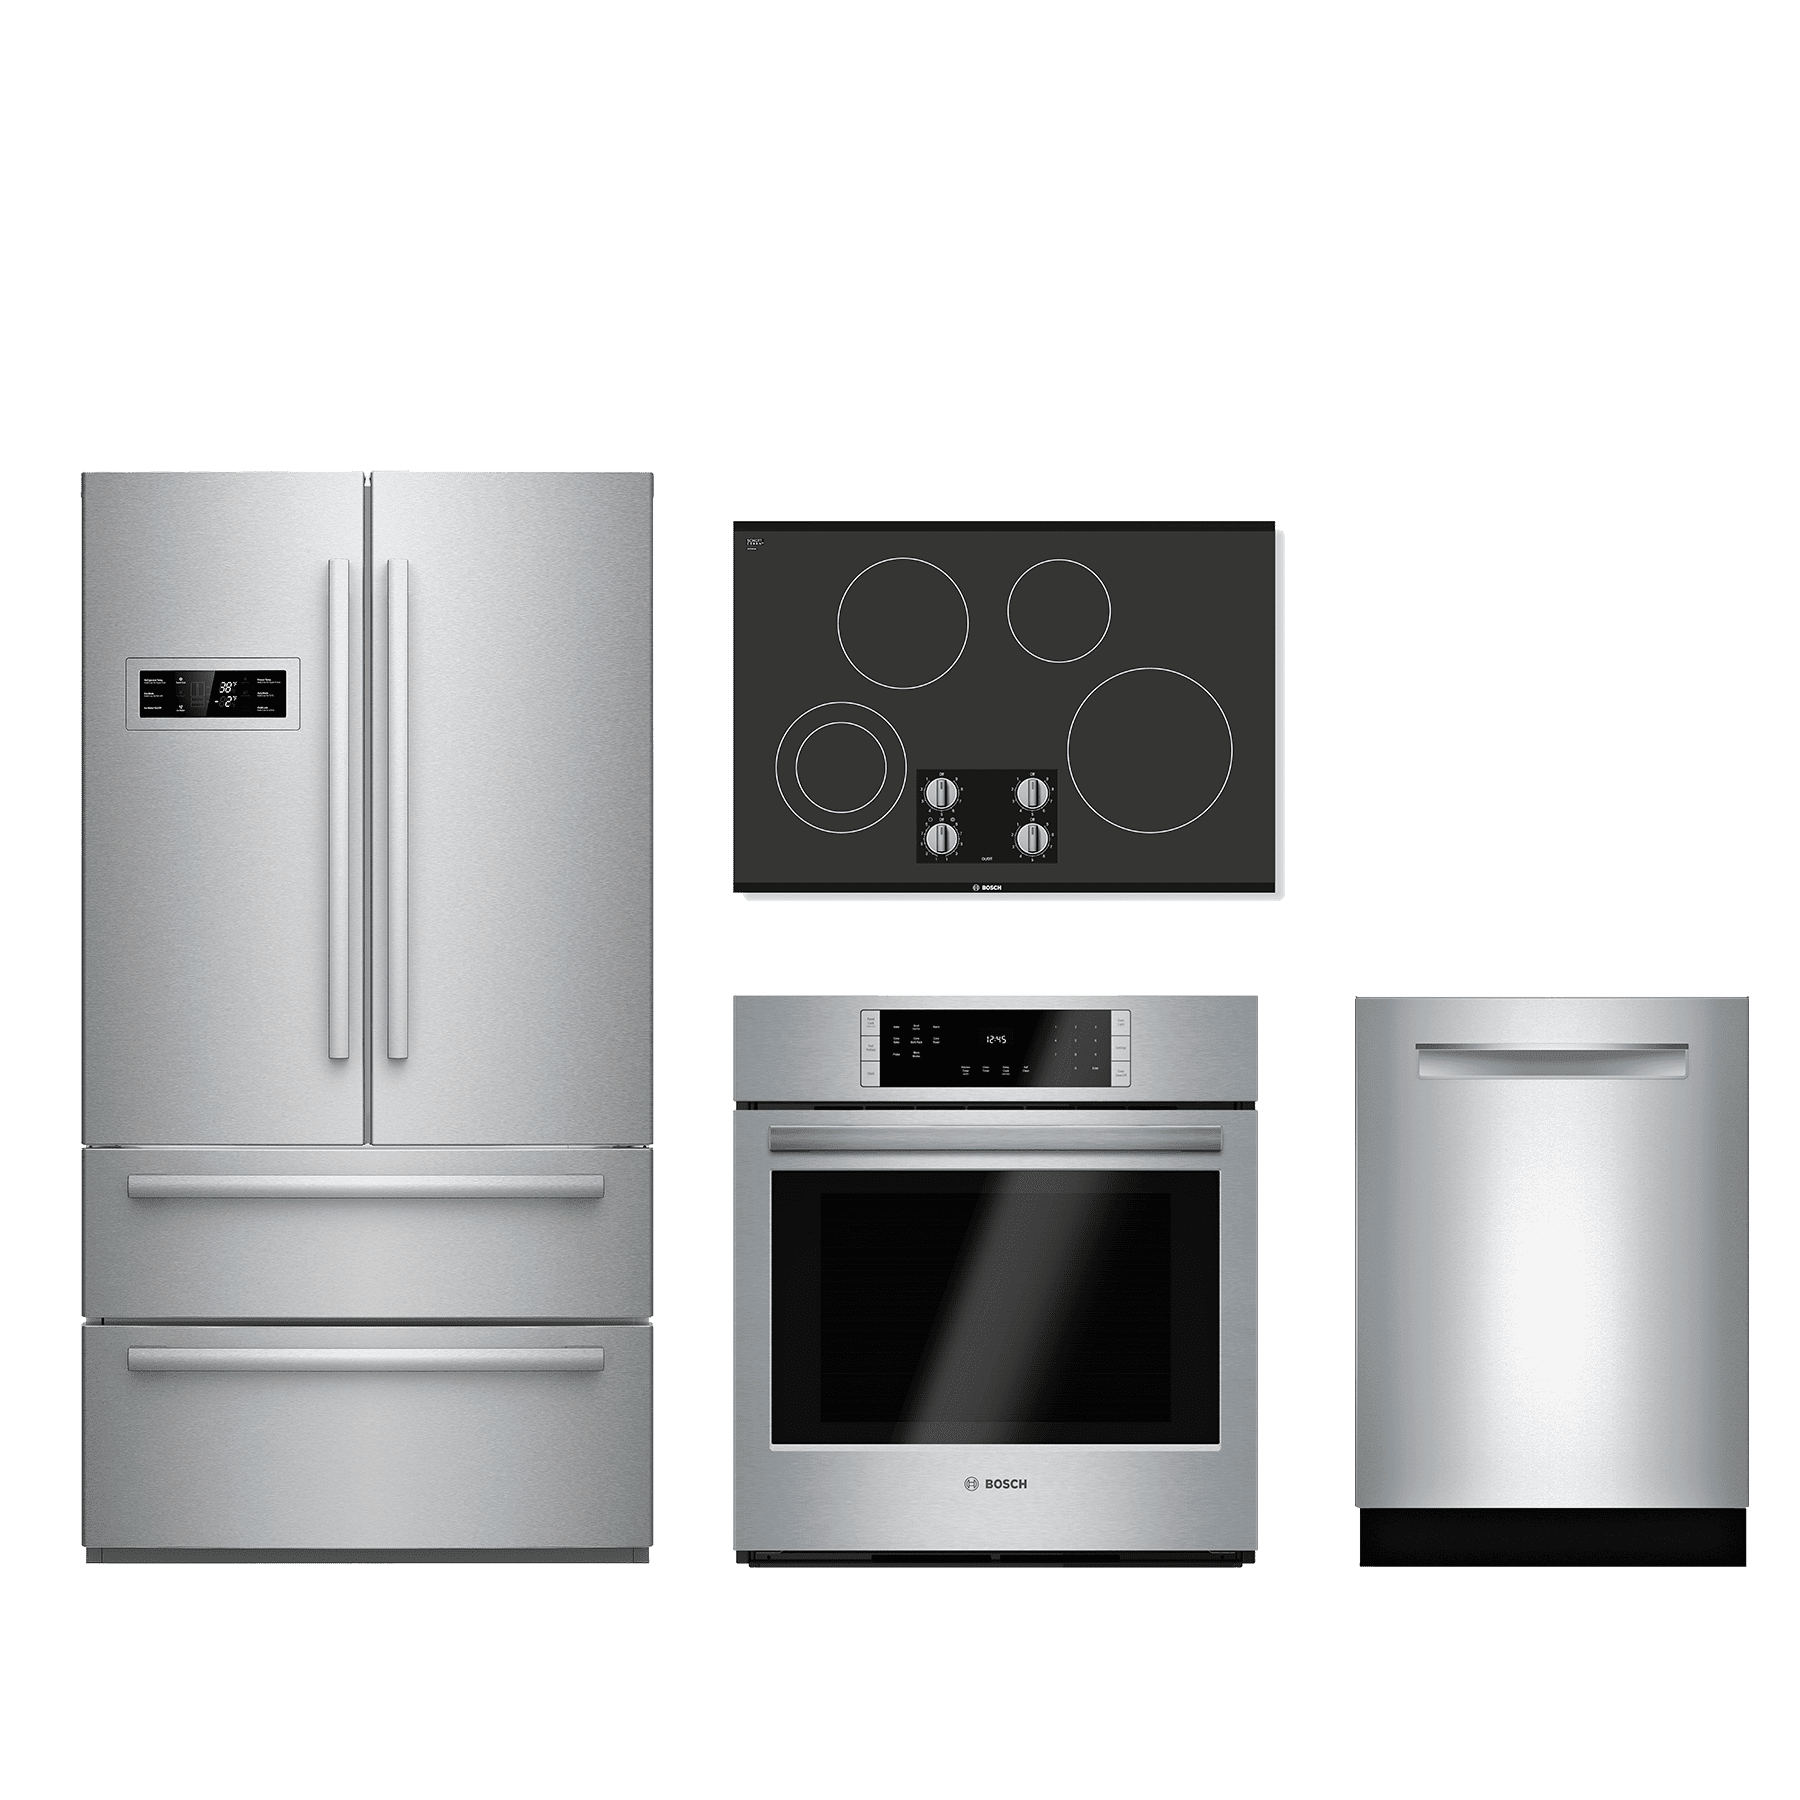 Kitchen Appliance Packages Shop Home Appliances, Kitchen Appliances ...